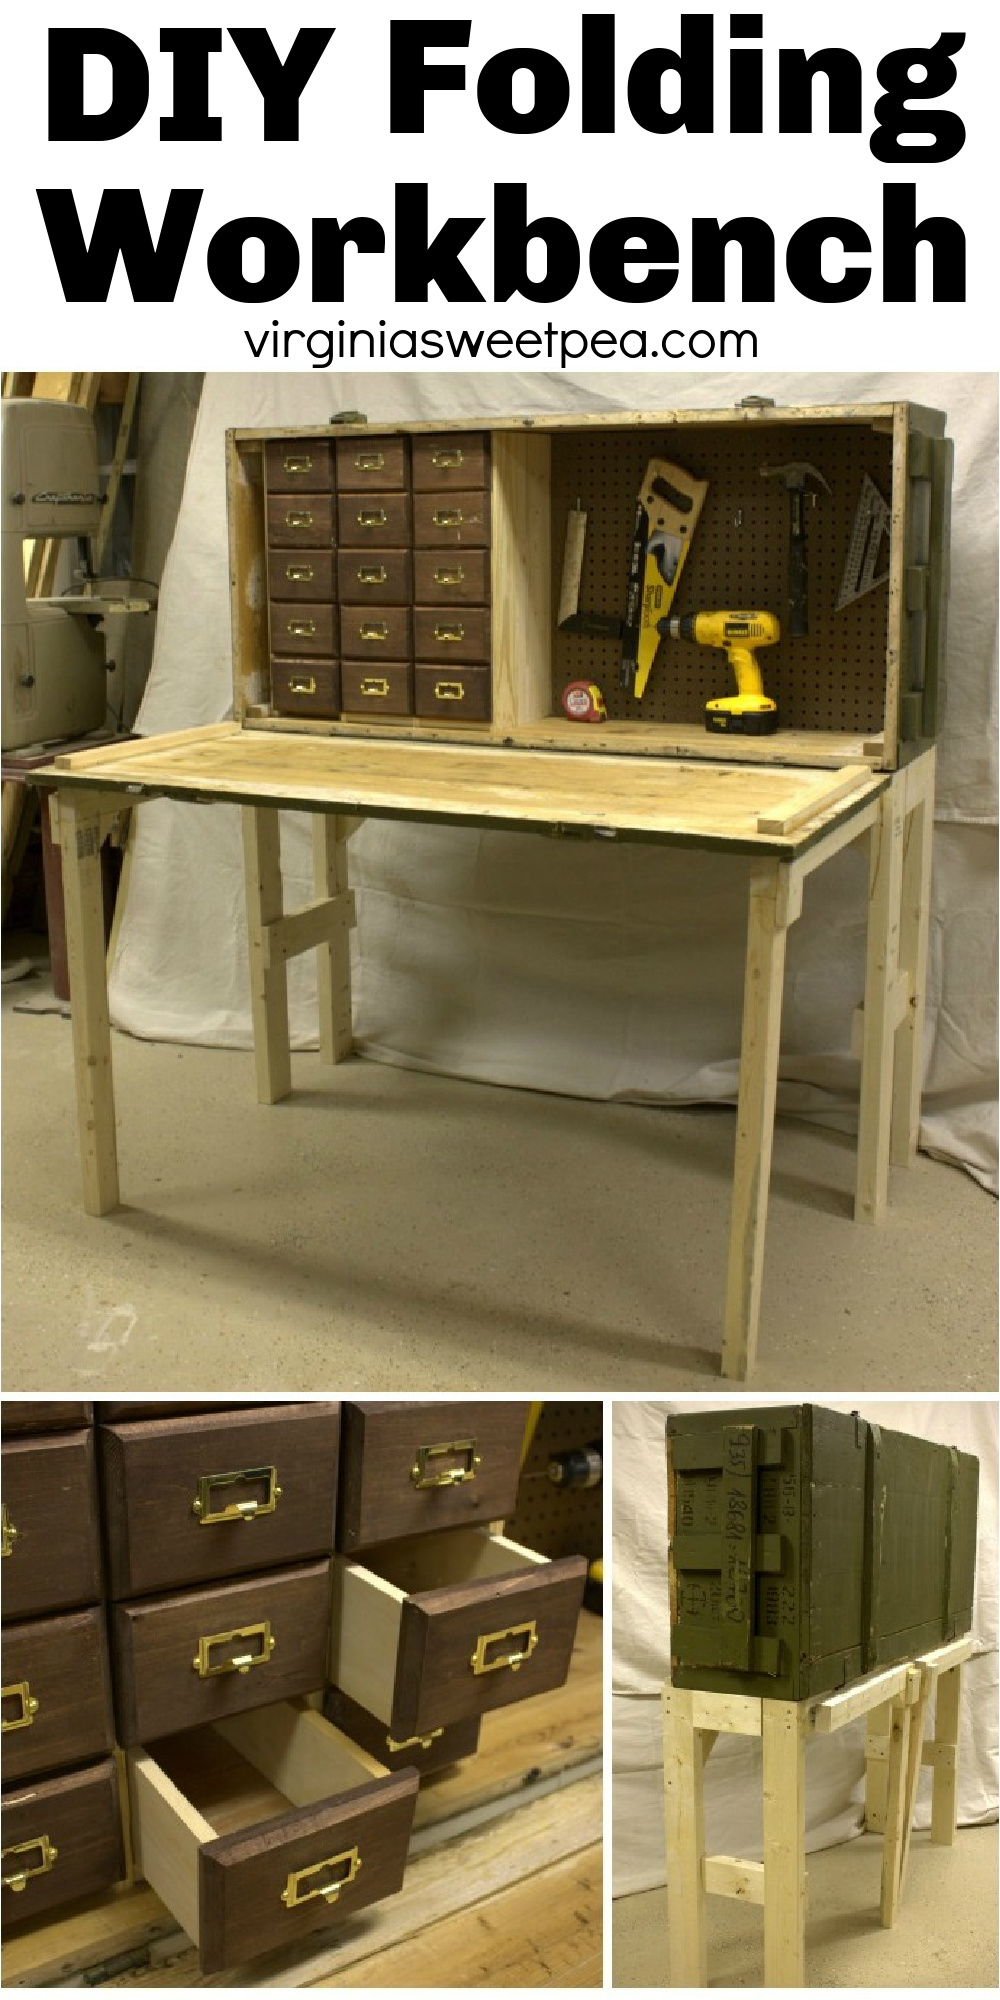 Learn how to make a handy workbench that folds.  This workbench has card catalog style drawers for storage and pegboard for hanging tools.  It gets bonus points for being an upcycled project.  It's made from an upcyled Russian rifle case.  This is a super cool DIY! via @spaula